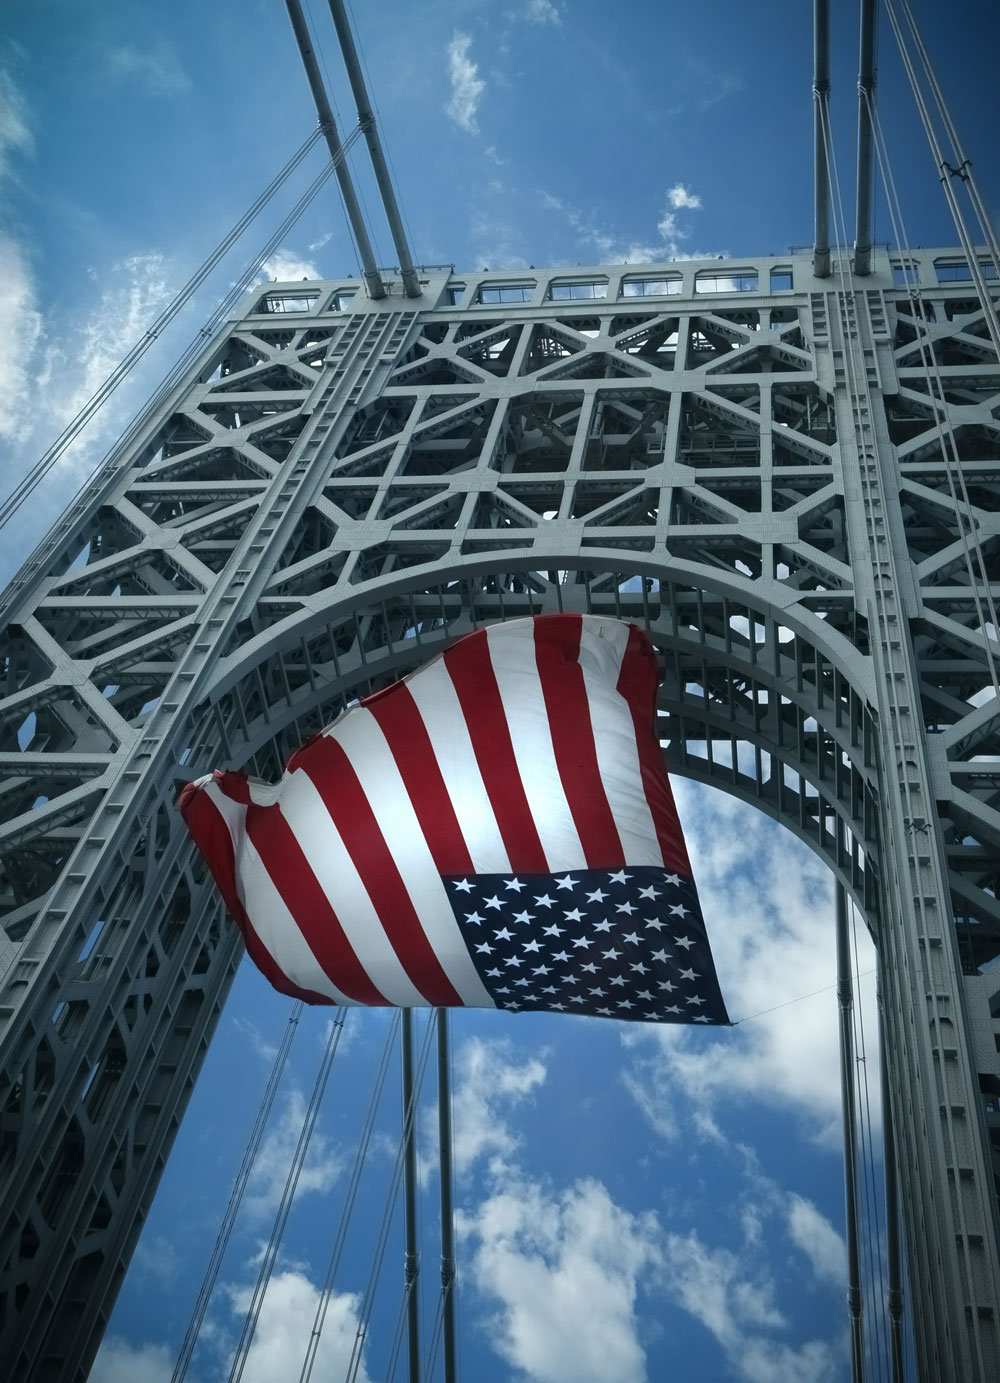 USA flag in the wind on George Washington Bridge